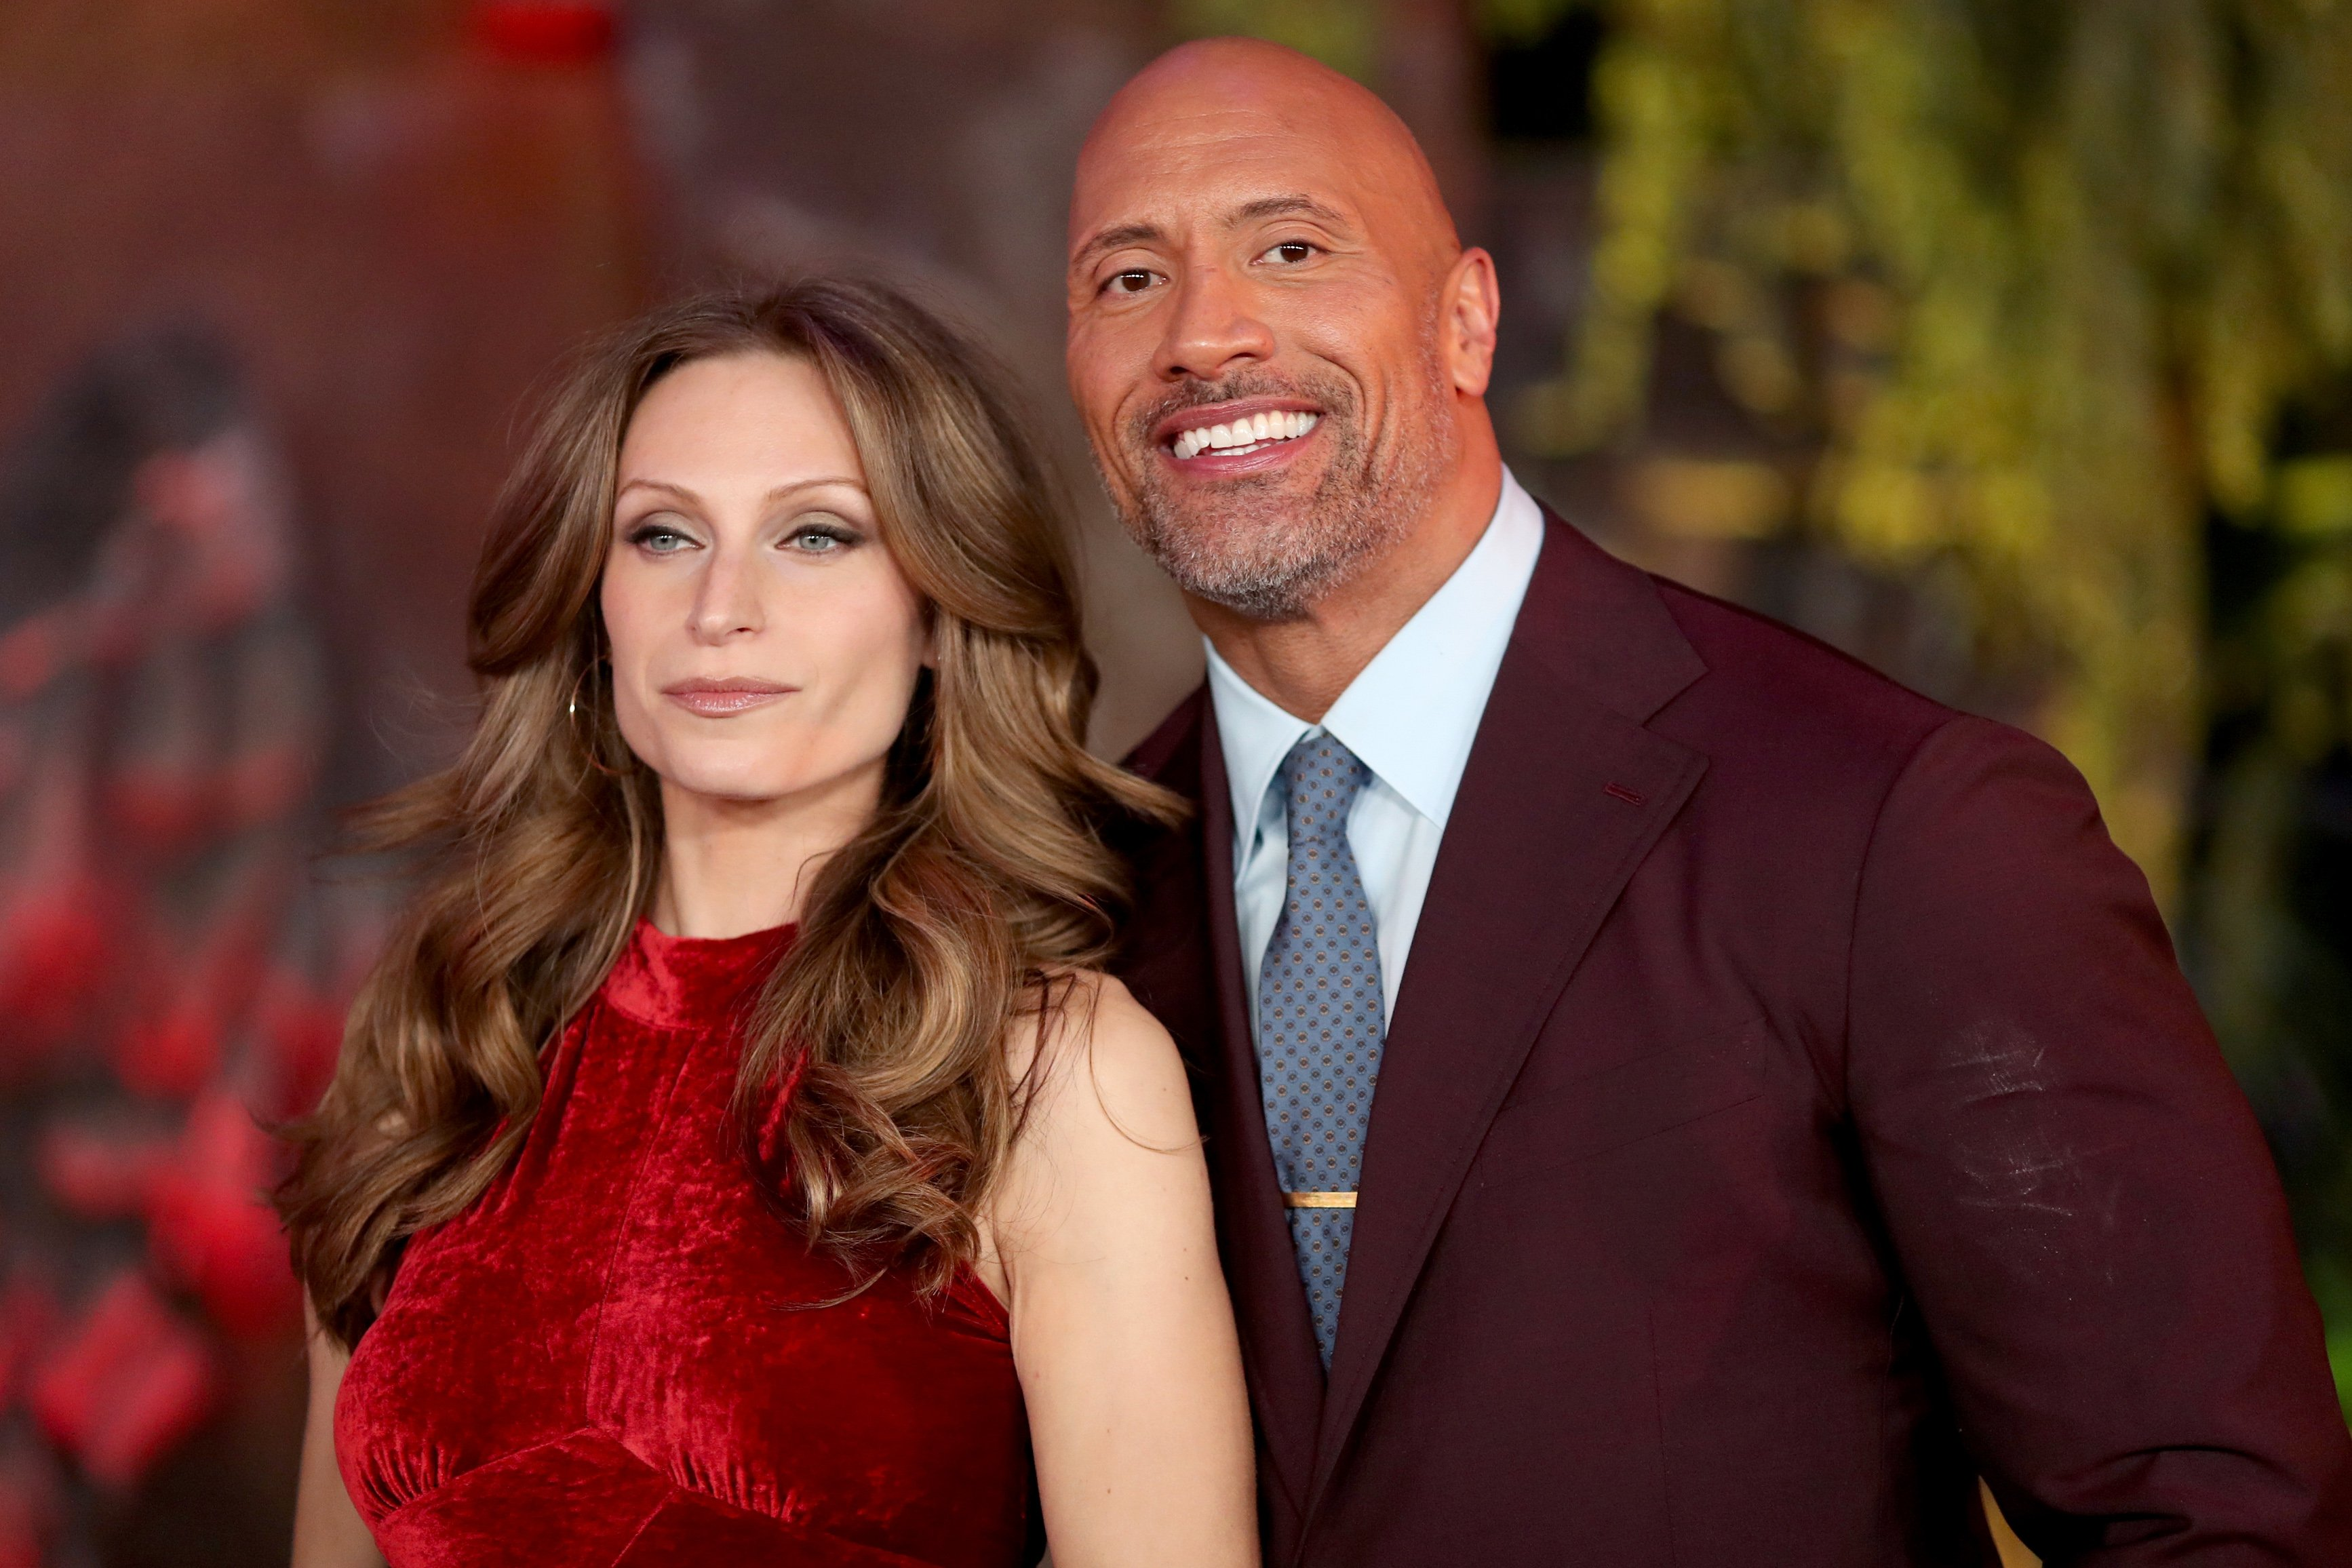 """Lauren Hashian and Dwayne Johnson attend the premiere of Columbia Pictures' """"Jumanji: Welcome To The Jungle"""" on December 11, 2017, in Hollywood, California. 